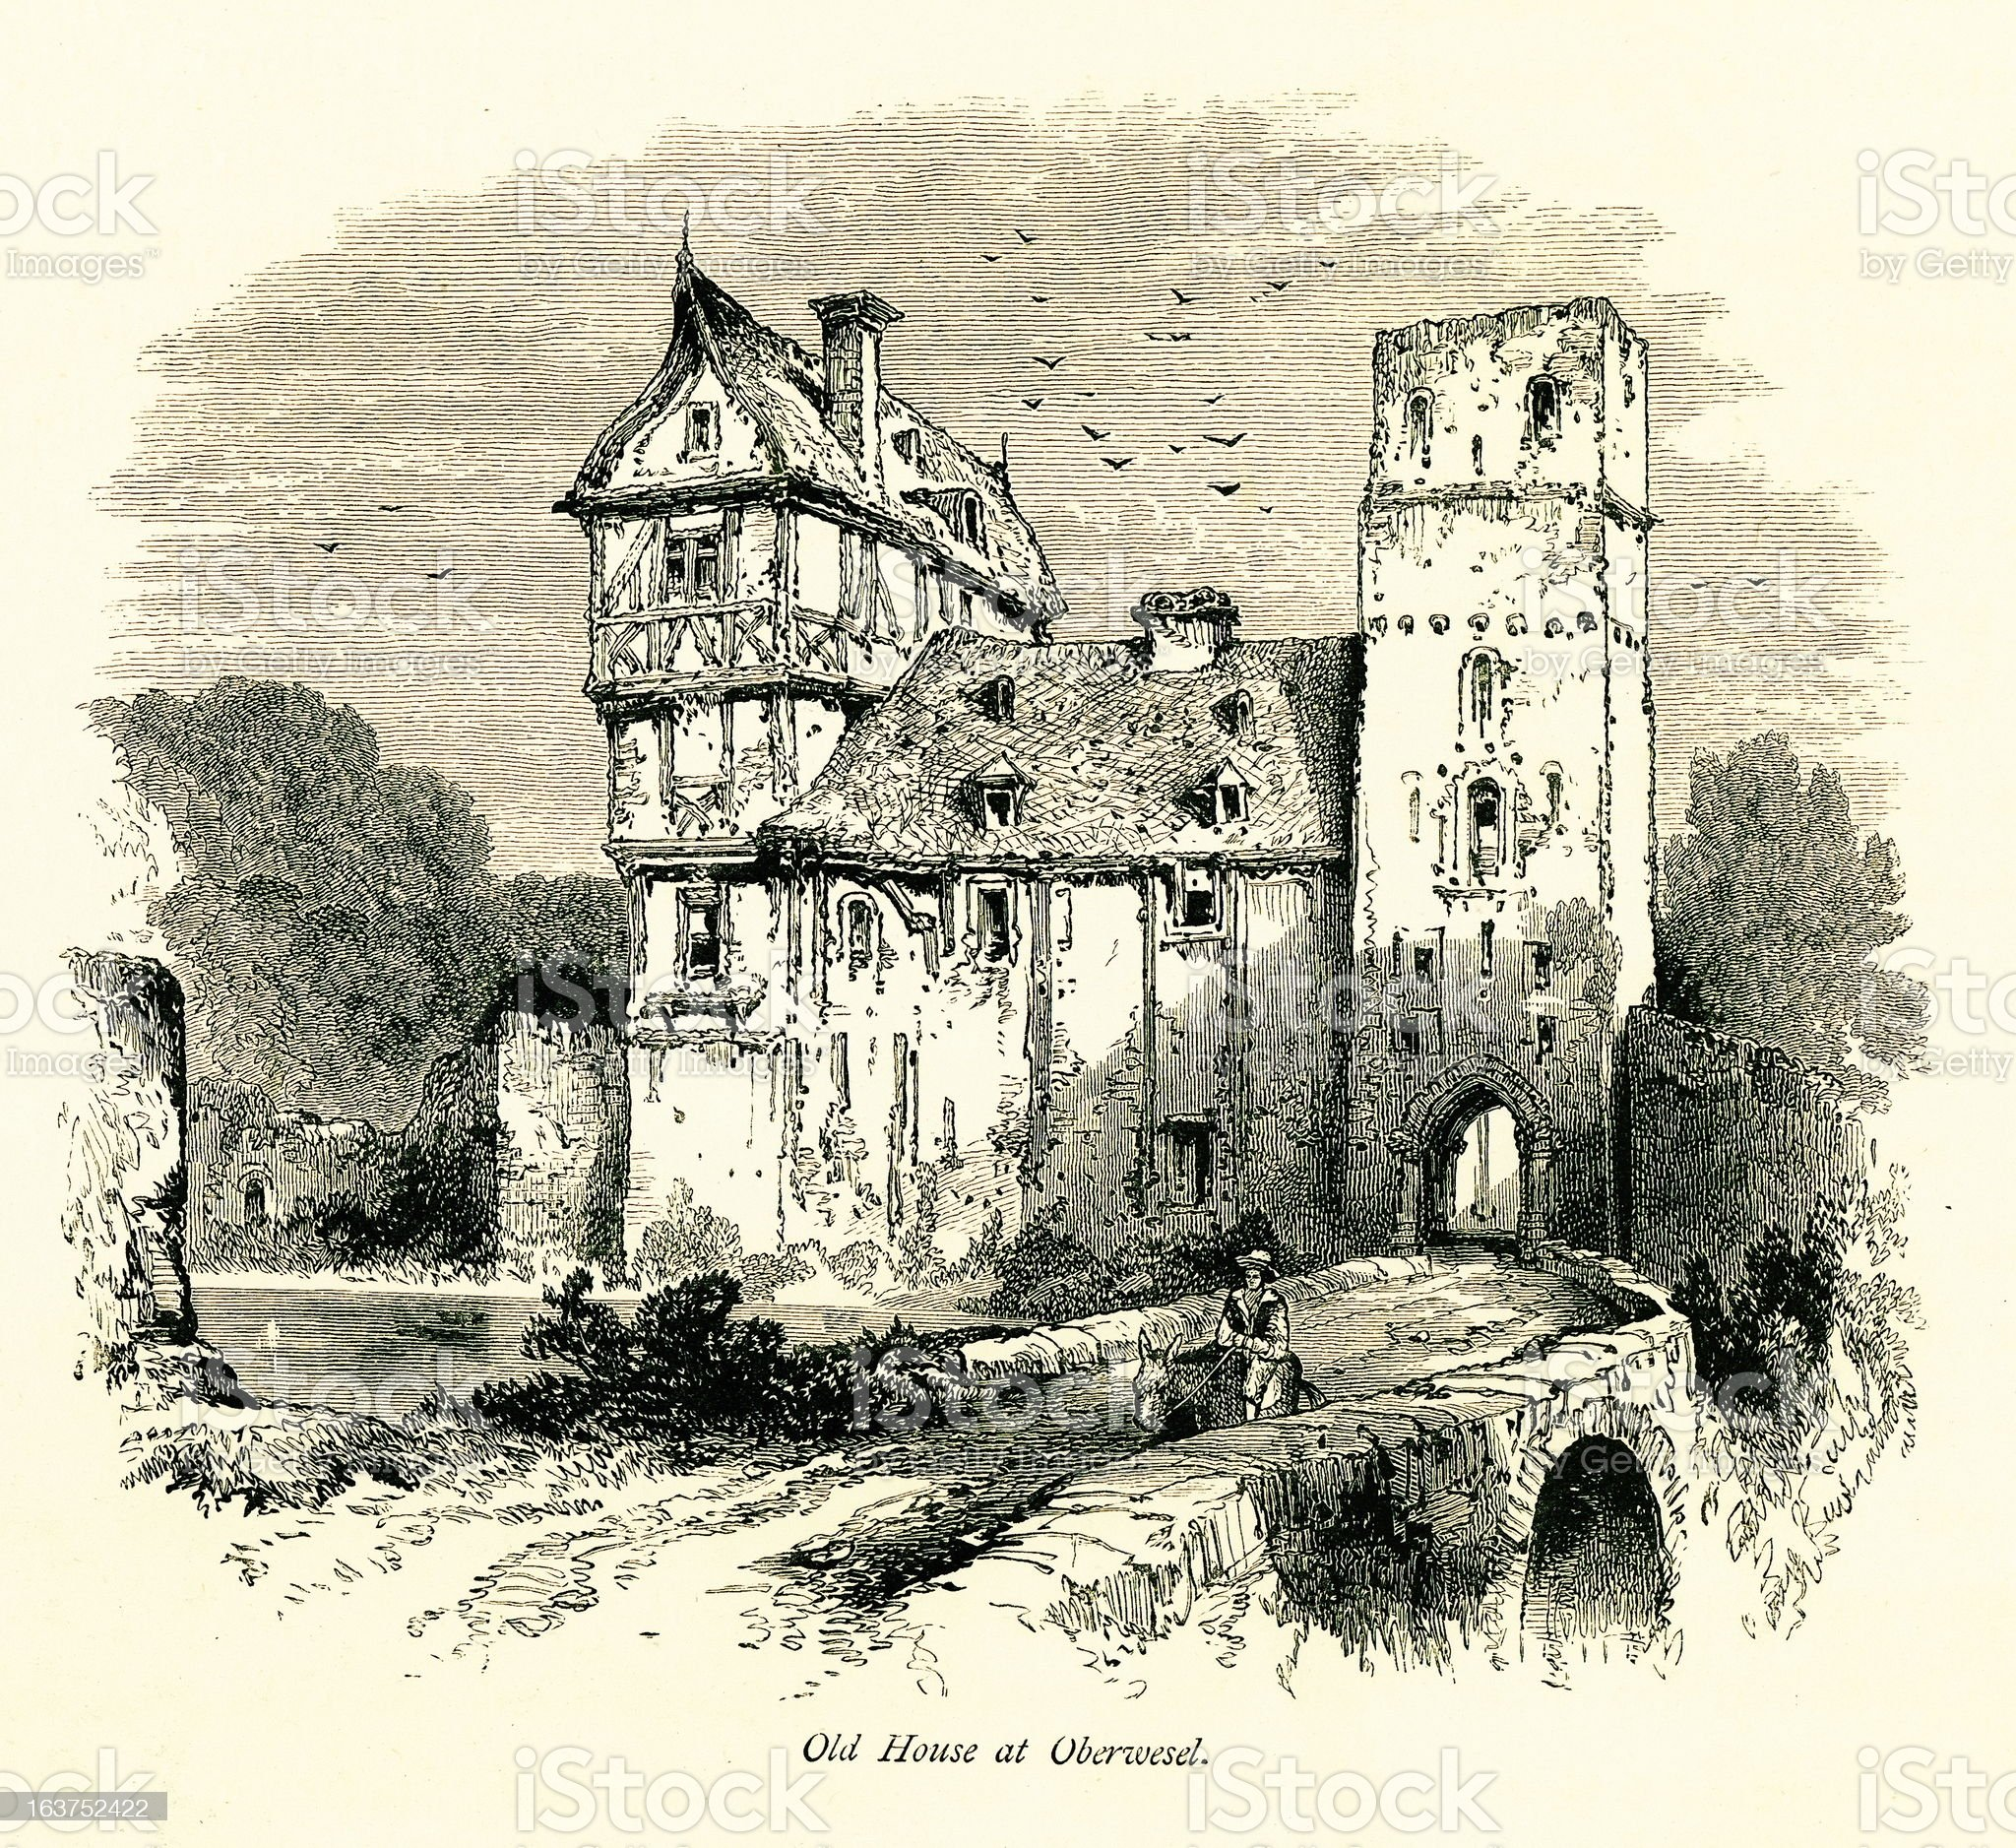 Old house at Oberwesel, Germany I Antique European Illustrations royalty-free stock vector art